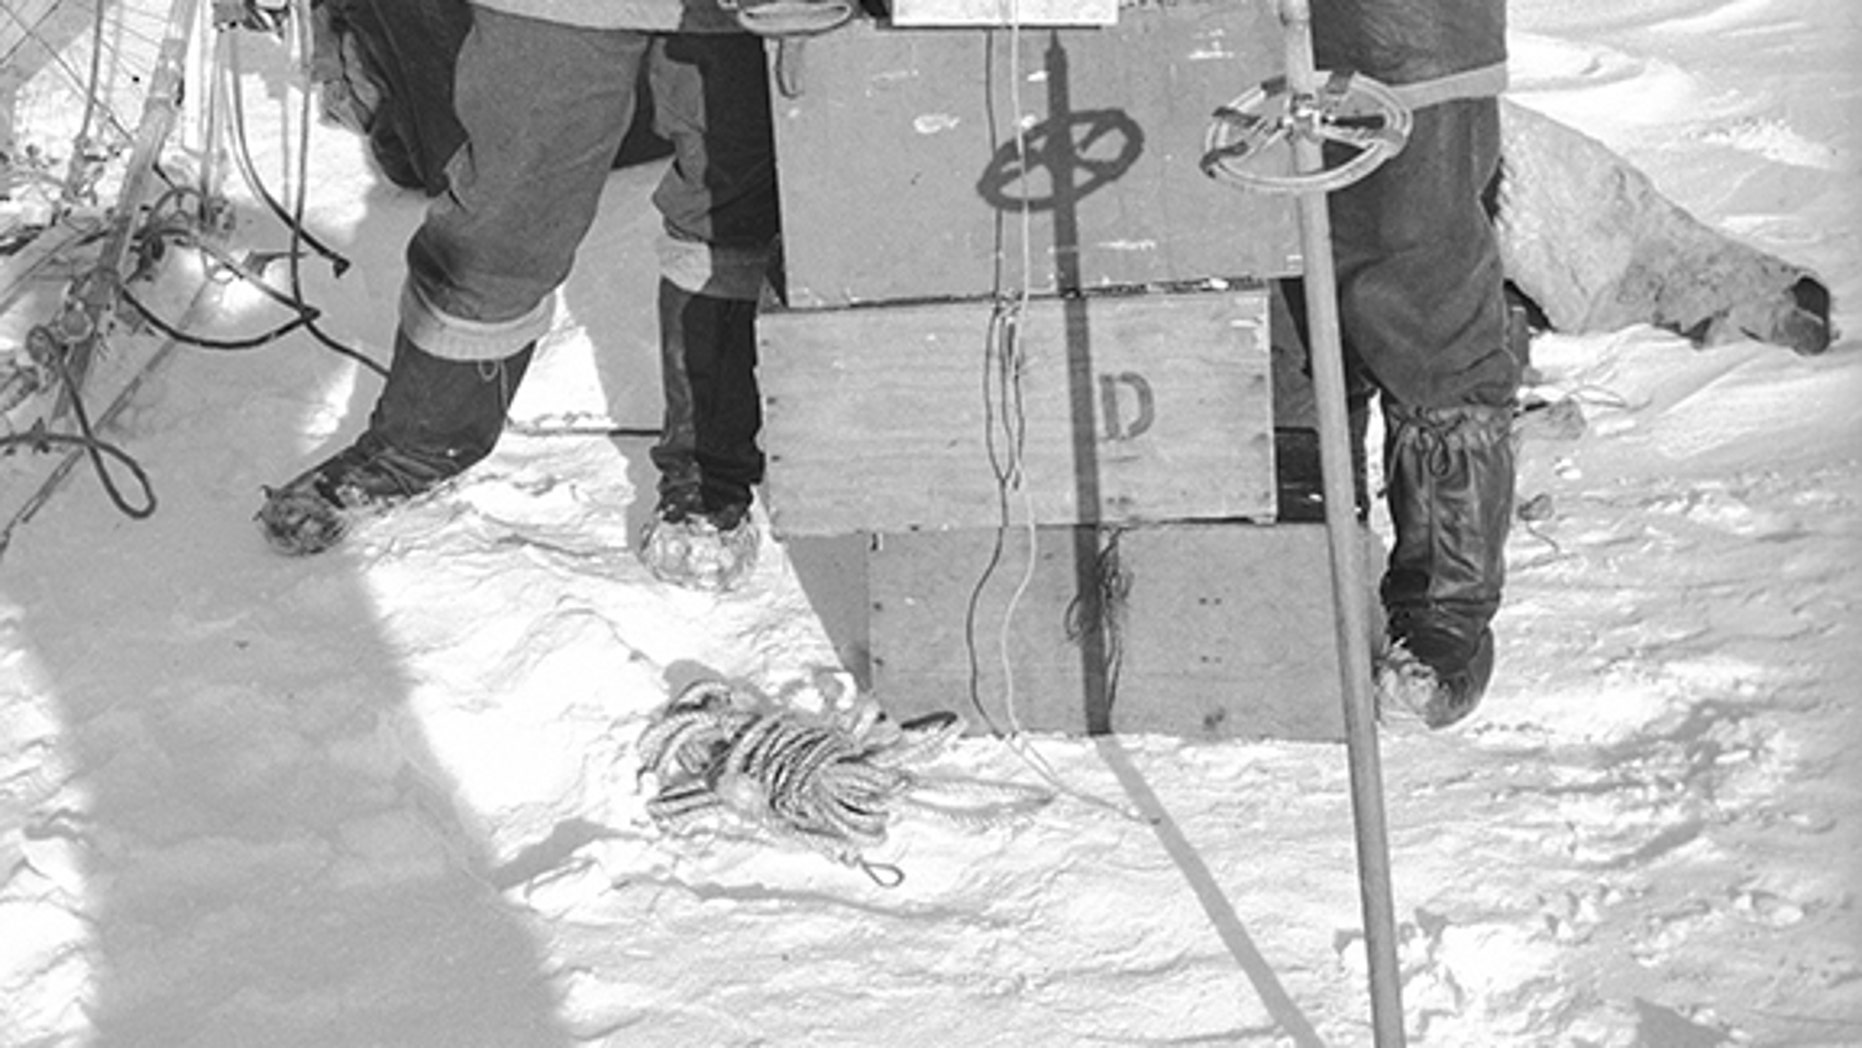 The end of the first sledge journey from Hope Bay: Victor Russell and David James. Launched in 1943, Operation Tabarin was an expedition to secretly establish bases, keep a watchful eye on German and Japanese activities, and curb opportunistic Argentinian incursions. (Credit: Natural Environment Research Council)